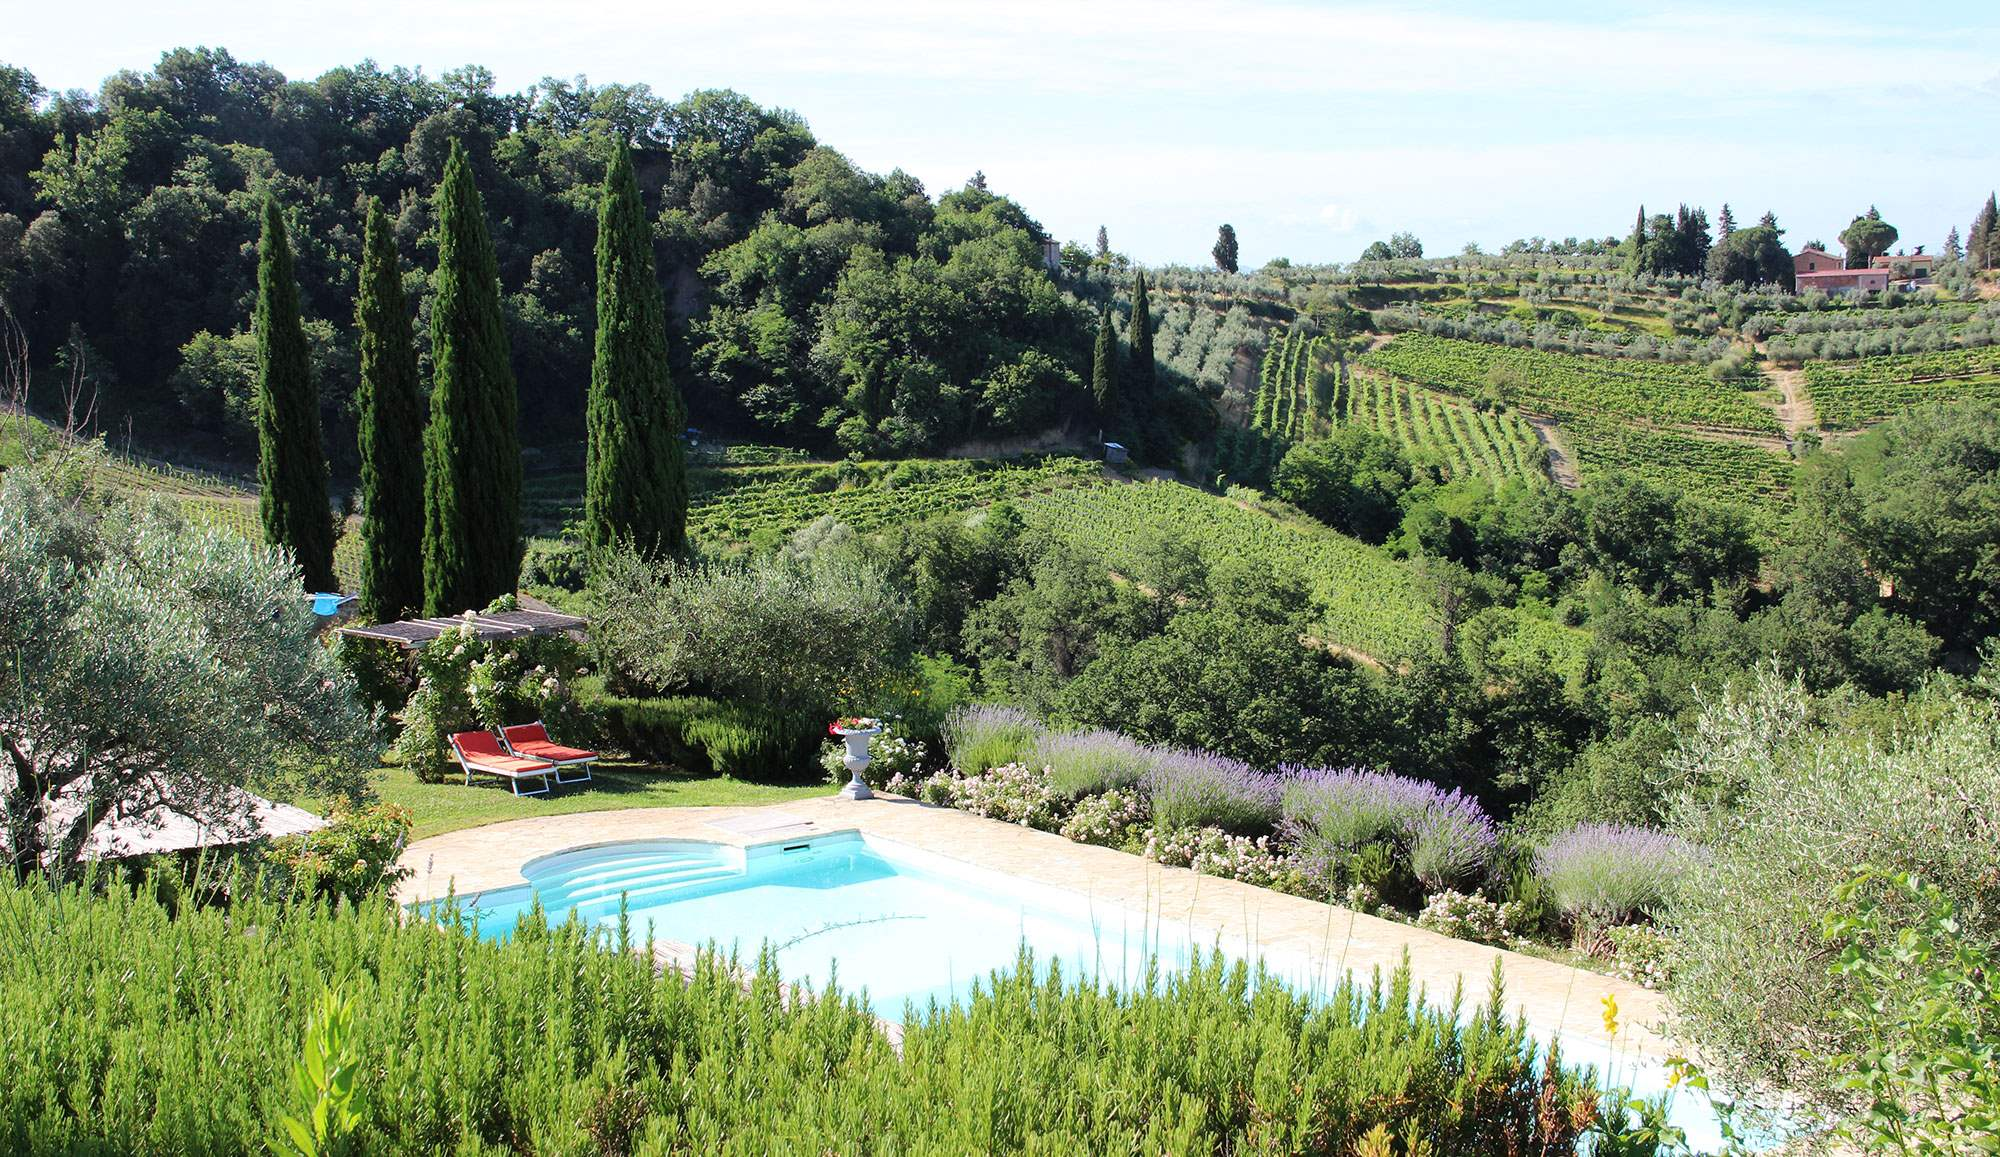 Villa Capanna, 3 bedroom villa in Chianti & Countryside, Tuscany Photo #16